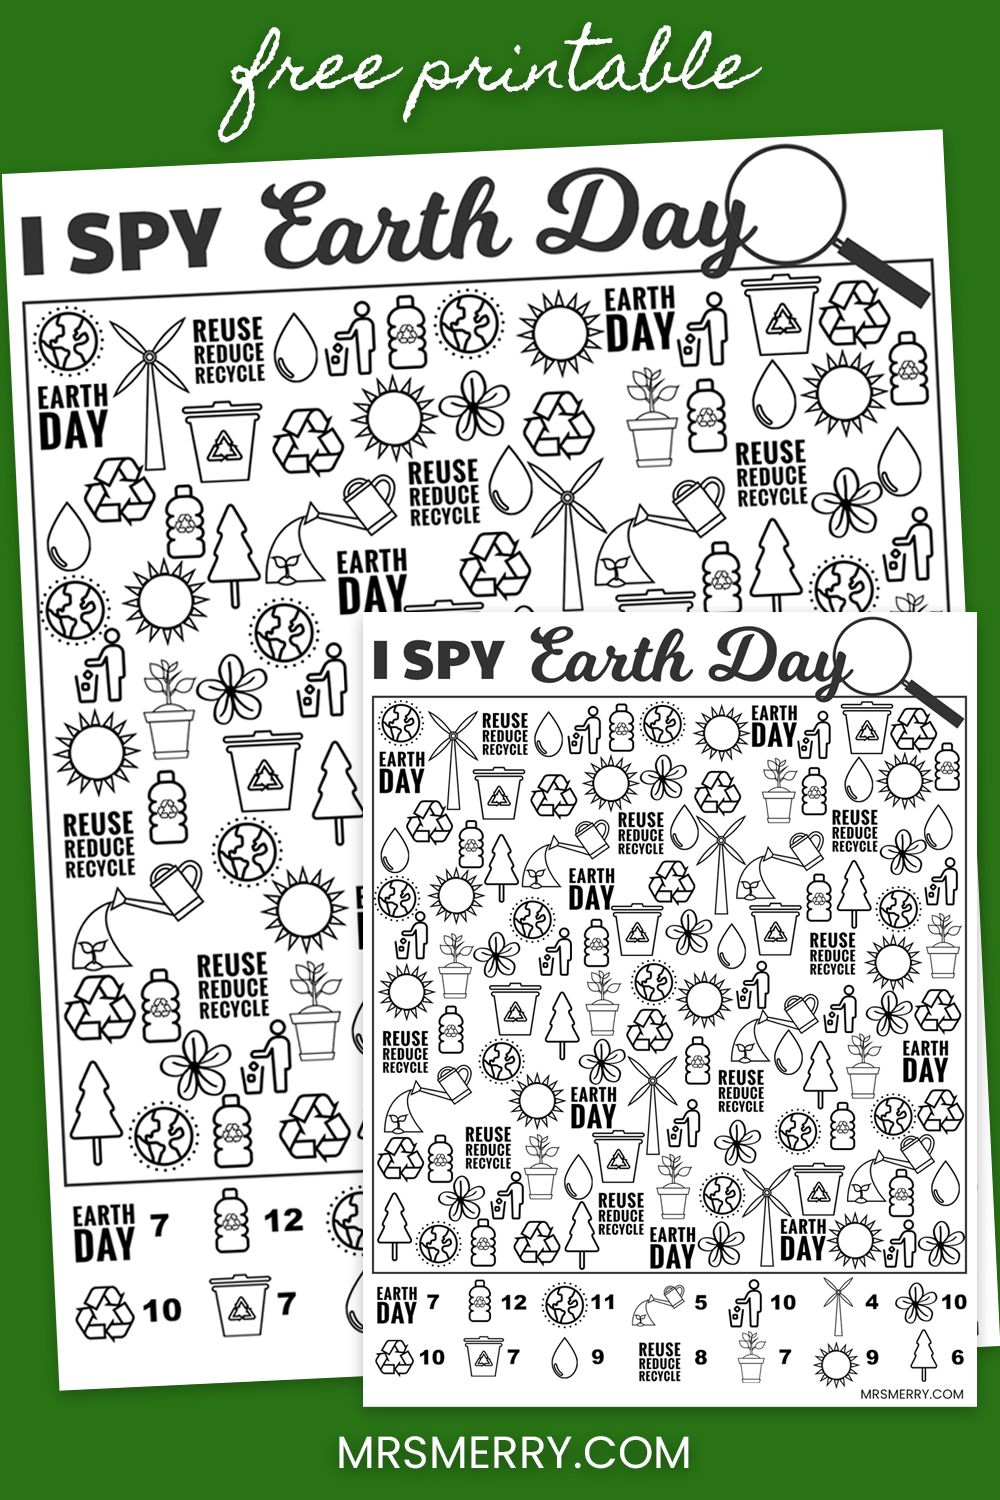 Free Kids Printable I Spy Earth Day Activity Mrs Merry Earth Day Activities Free Activities For Kids Activity Sheets For Kids [ 1500 x 1000 Pixel ]